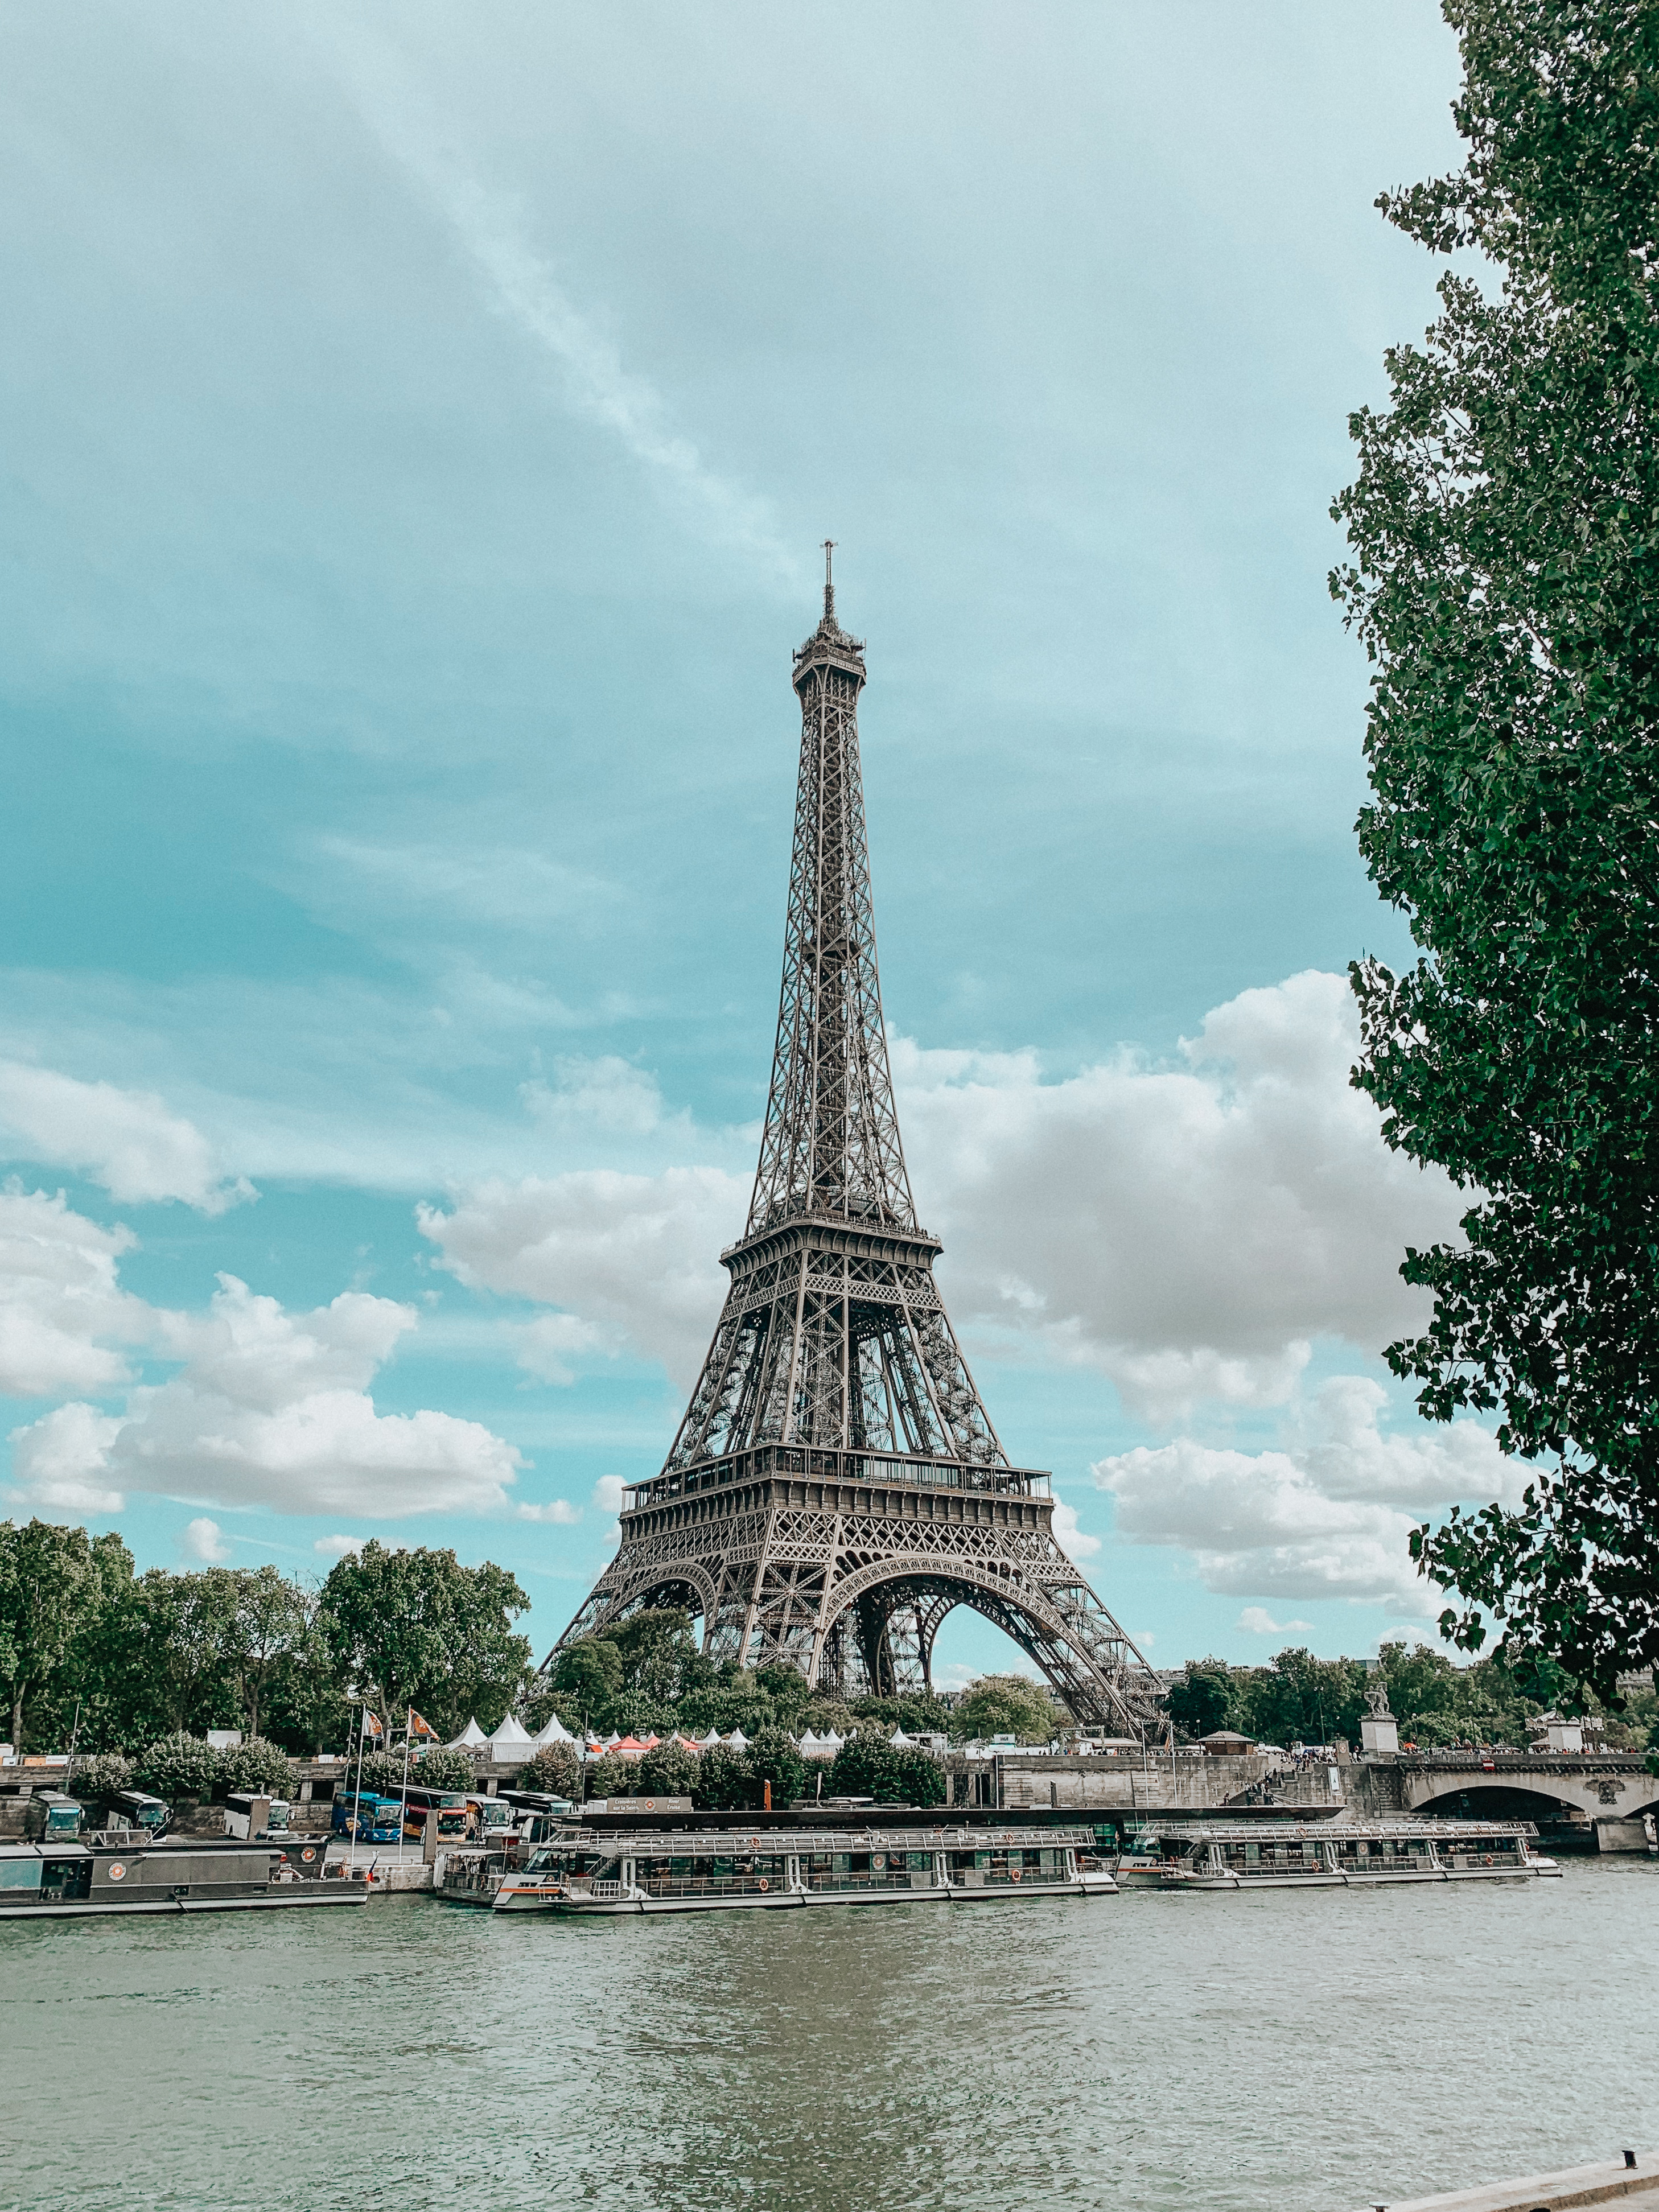 Eiffel Tower in Paris – thecasualfree.com